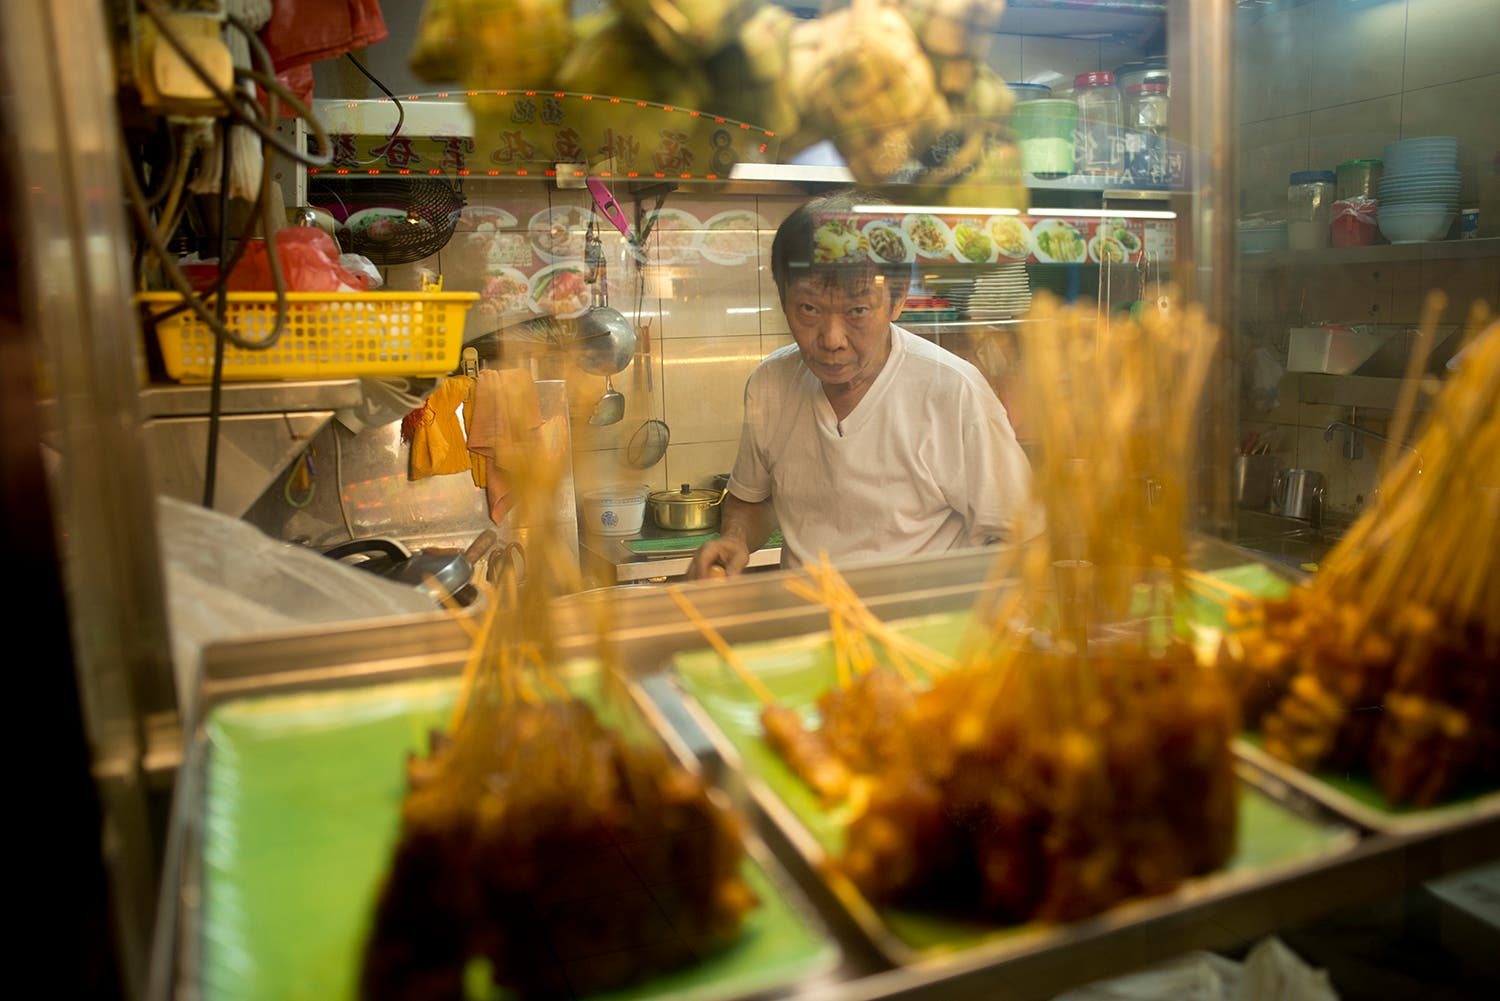 A vendor making satay looks out from his kitchen in a Singapore hawker market (Photo: Peter Harrison)